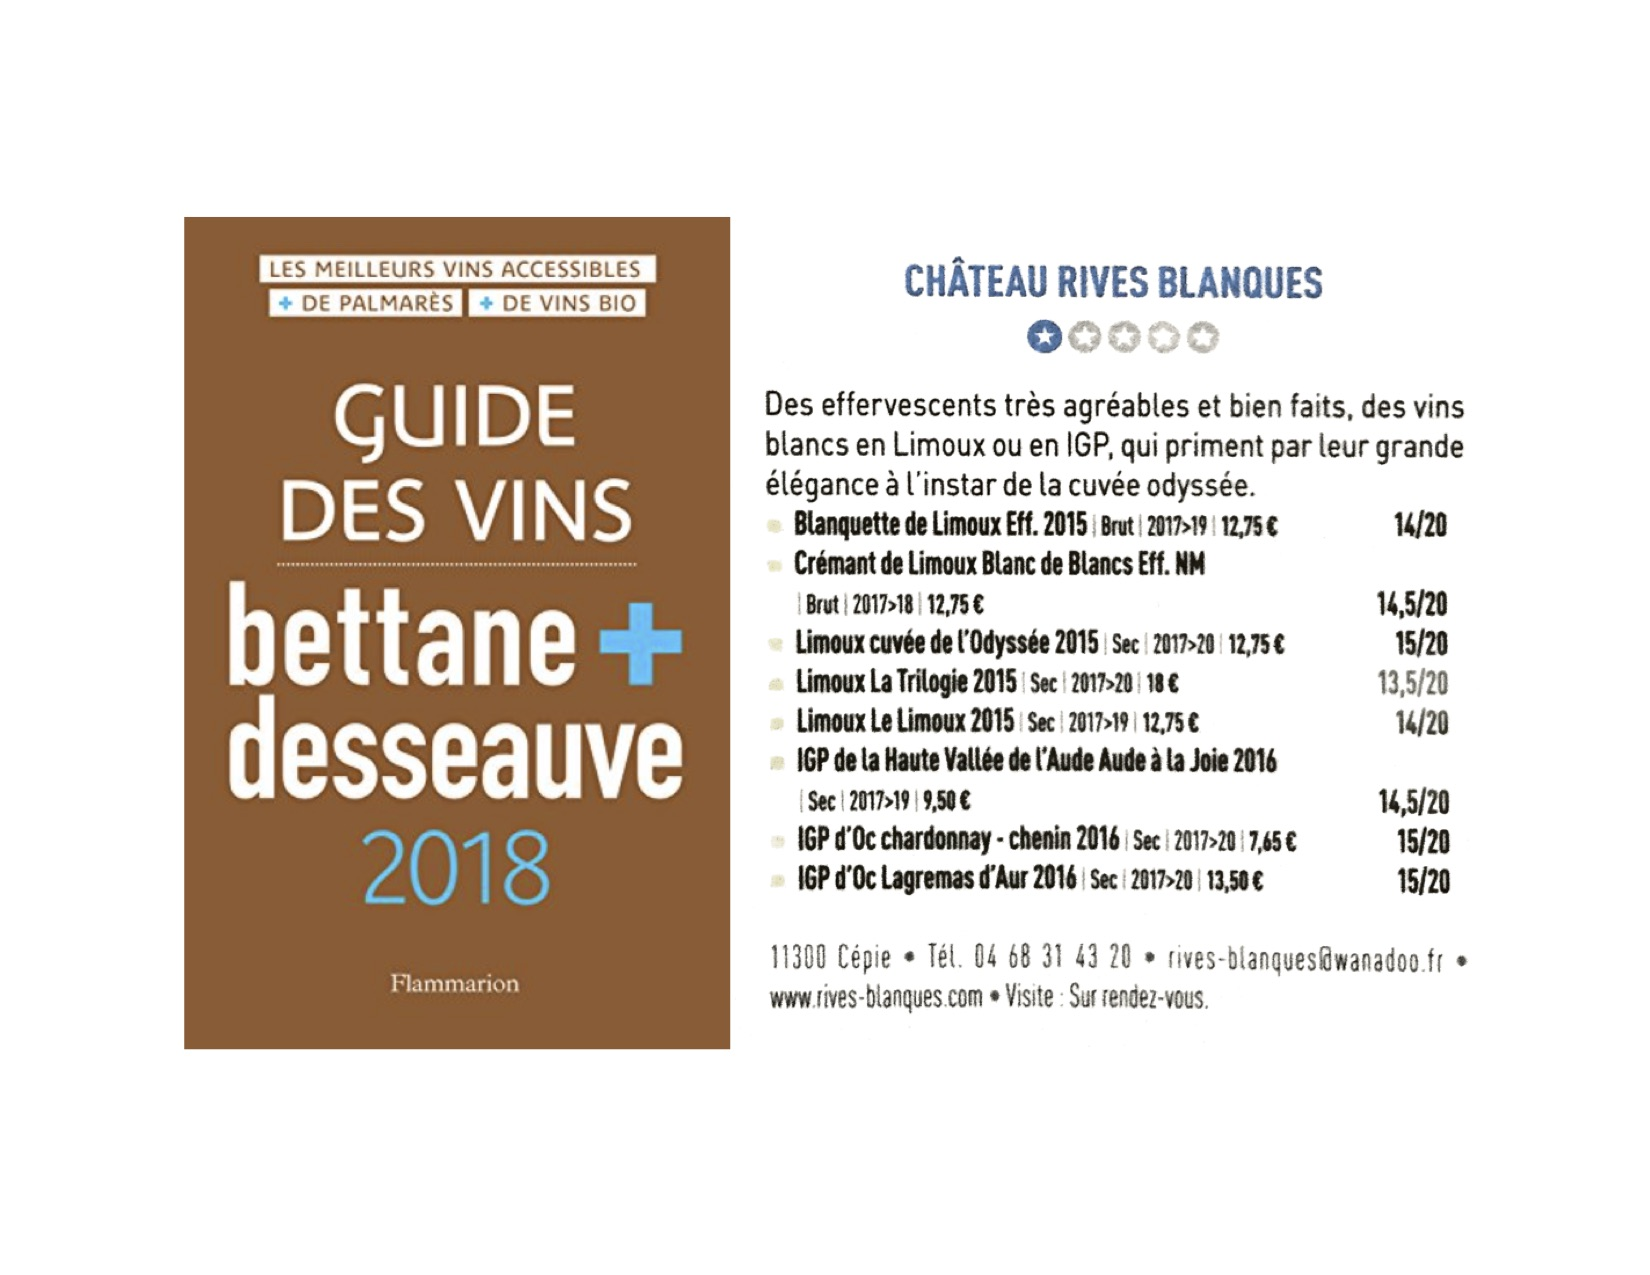 septembre 2017 les notes du guide des vins bettane desseauve 2018 chateau rives blanques. Black Bedroom Furniture Sets. Home Design Ideas